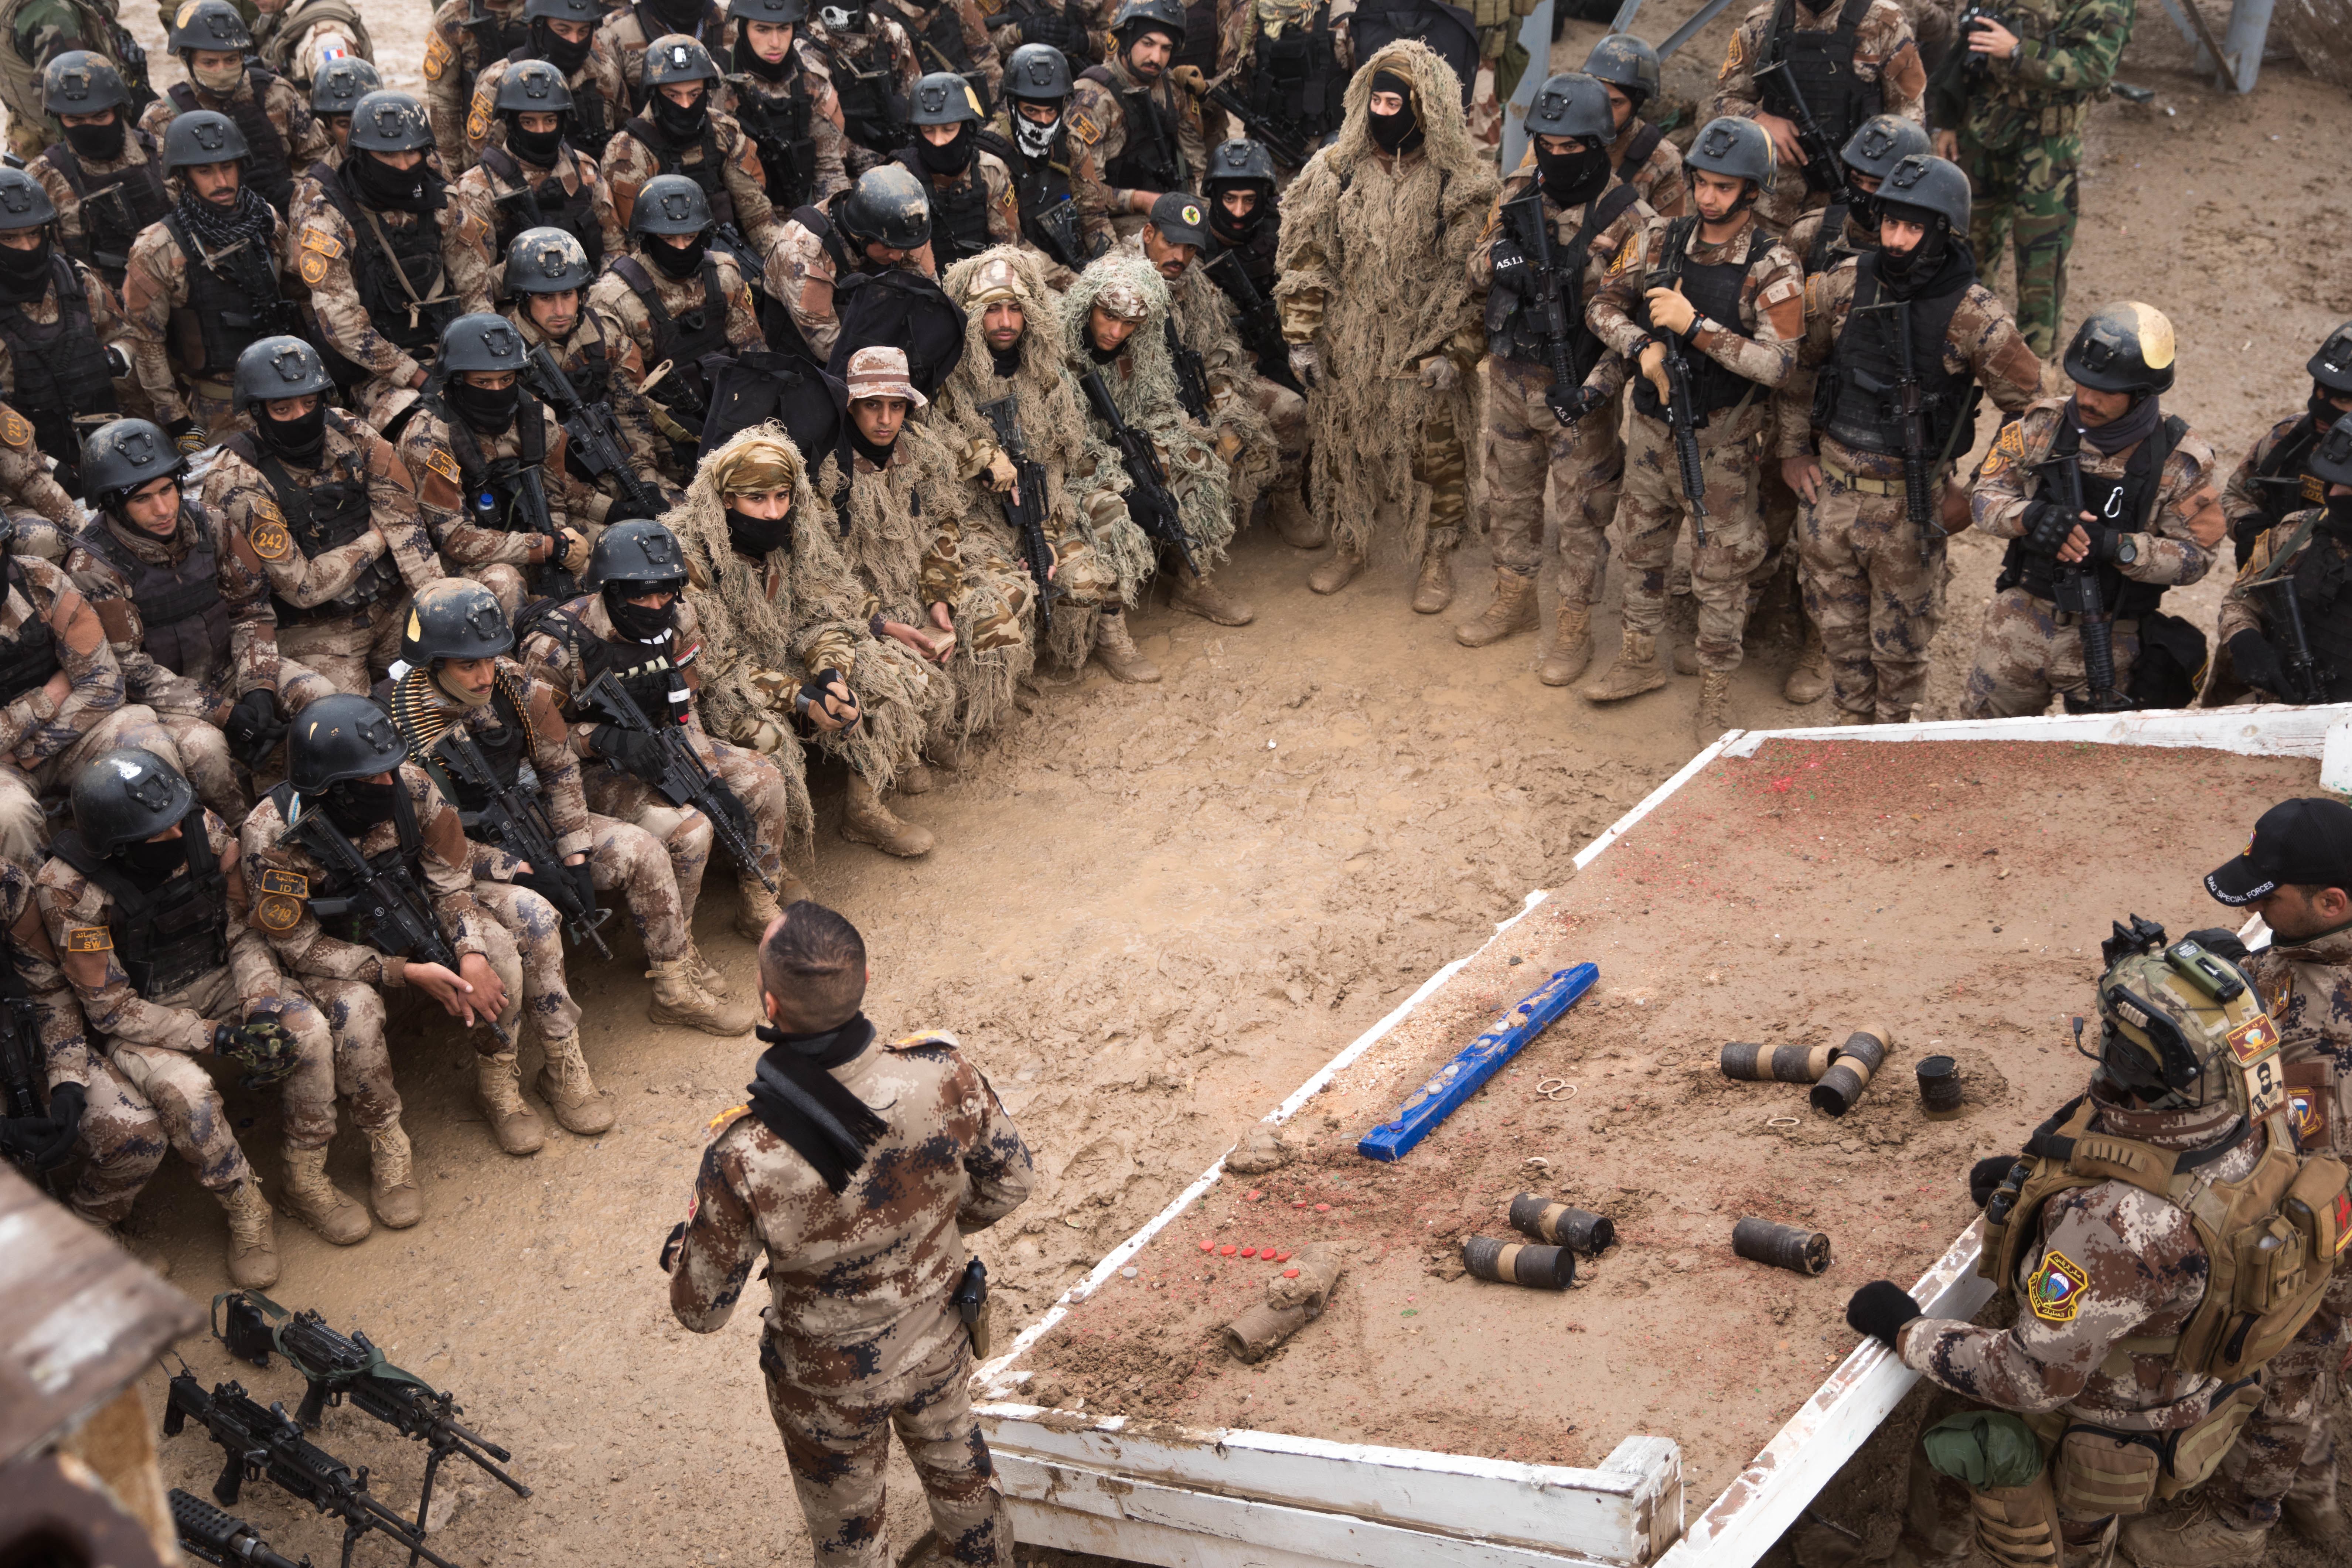 The Iraqi Counter-Terrorism Service's students are briefed before completing the last portion of the integration phase at a range complex in Besmaya, Iraq. (Spc. Sarah K. Anwar/Army)